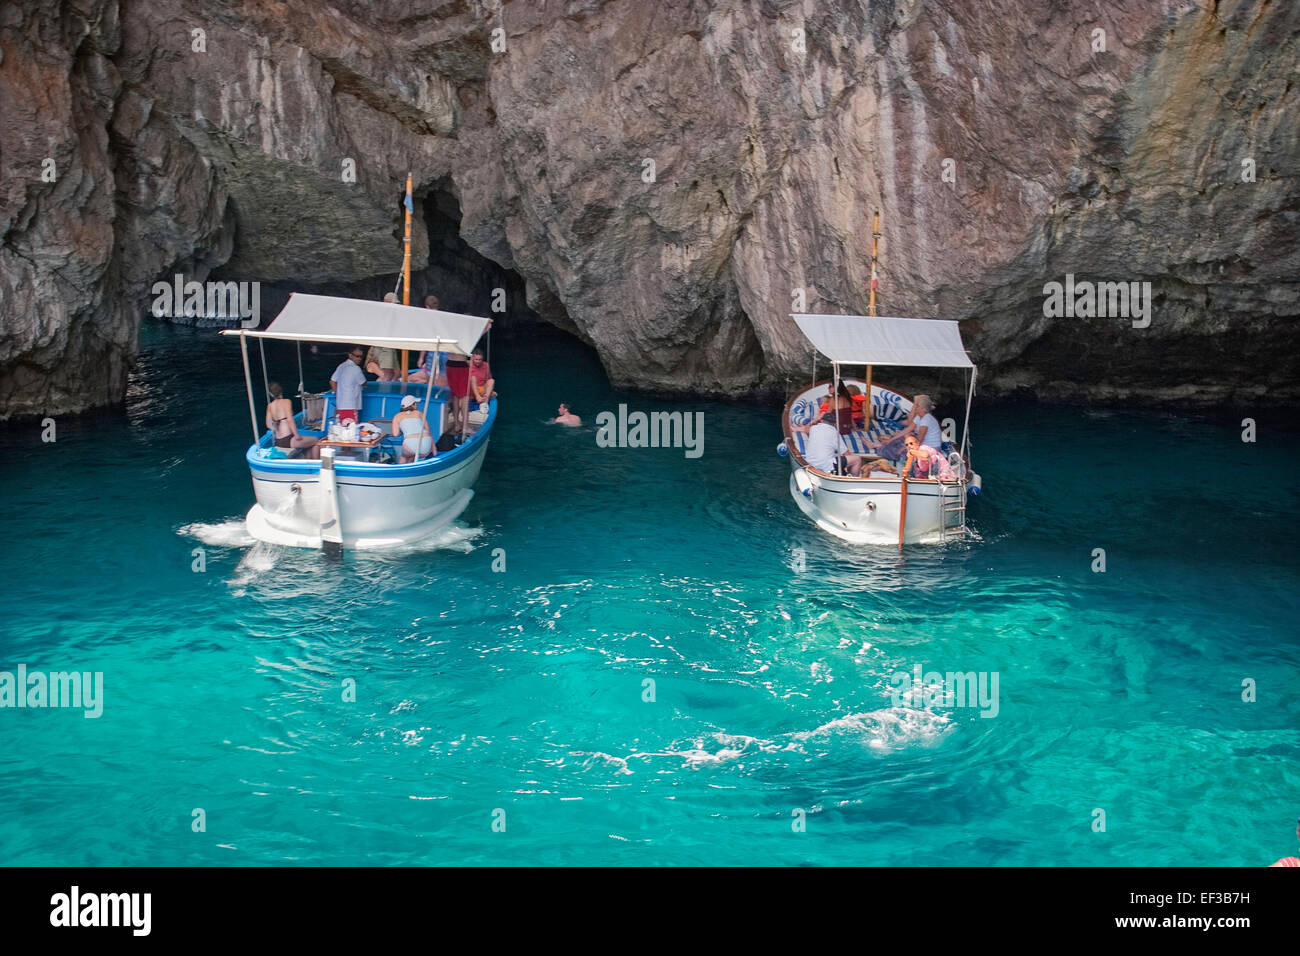 Green grotto isle of capri italy stock photo royalty for Isle of capri tours